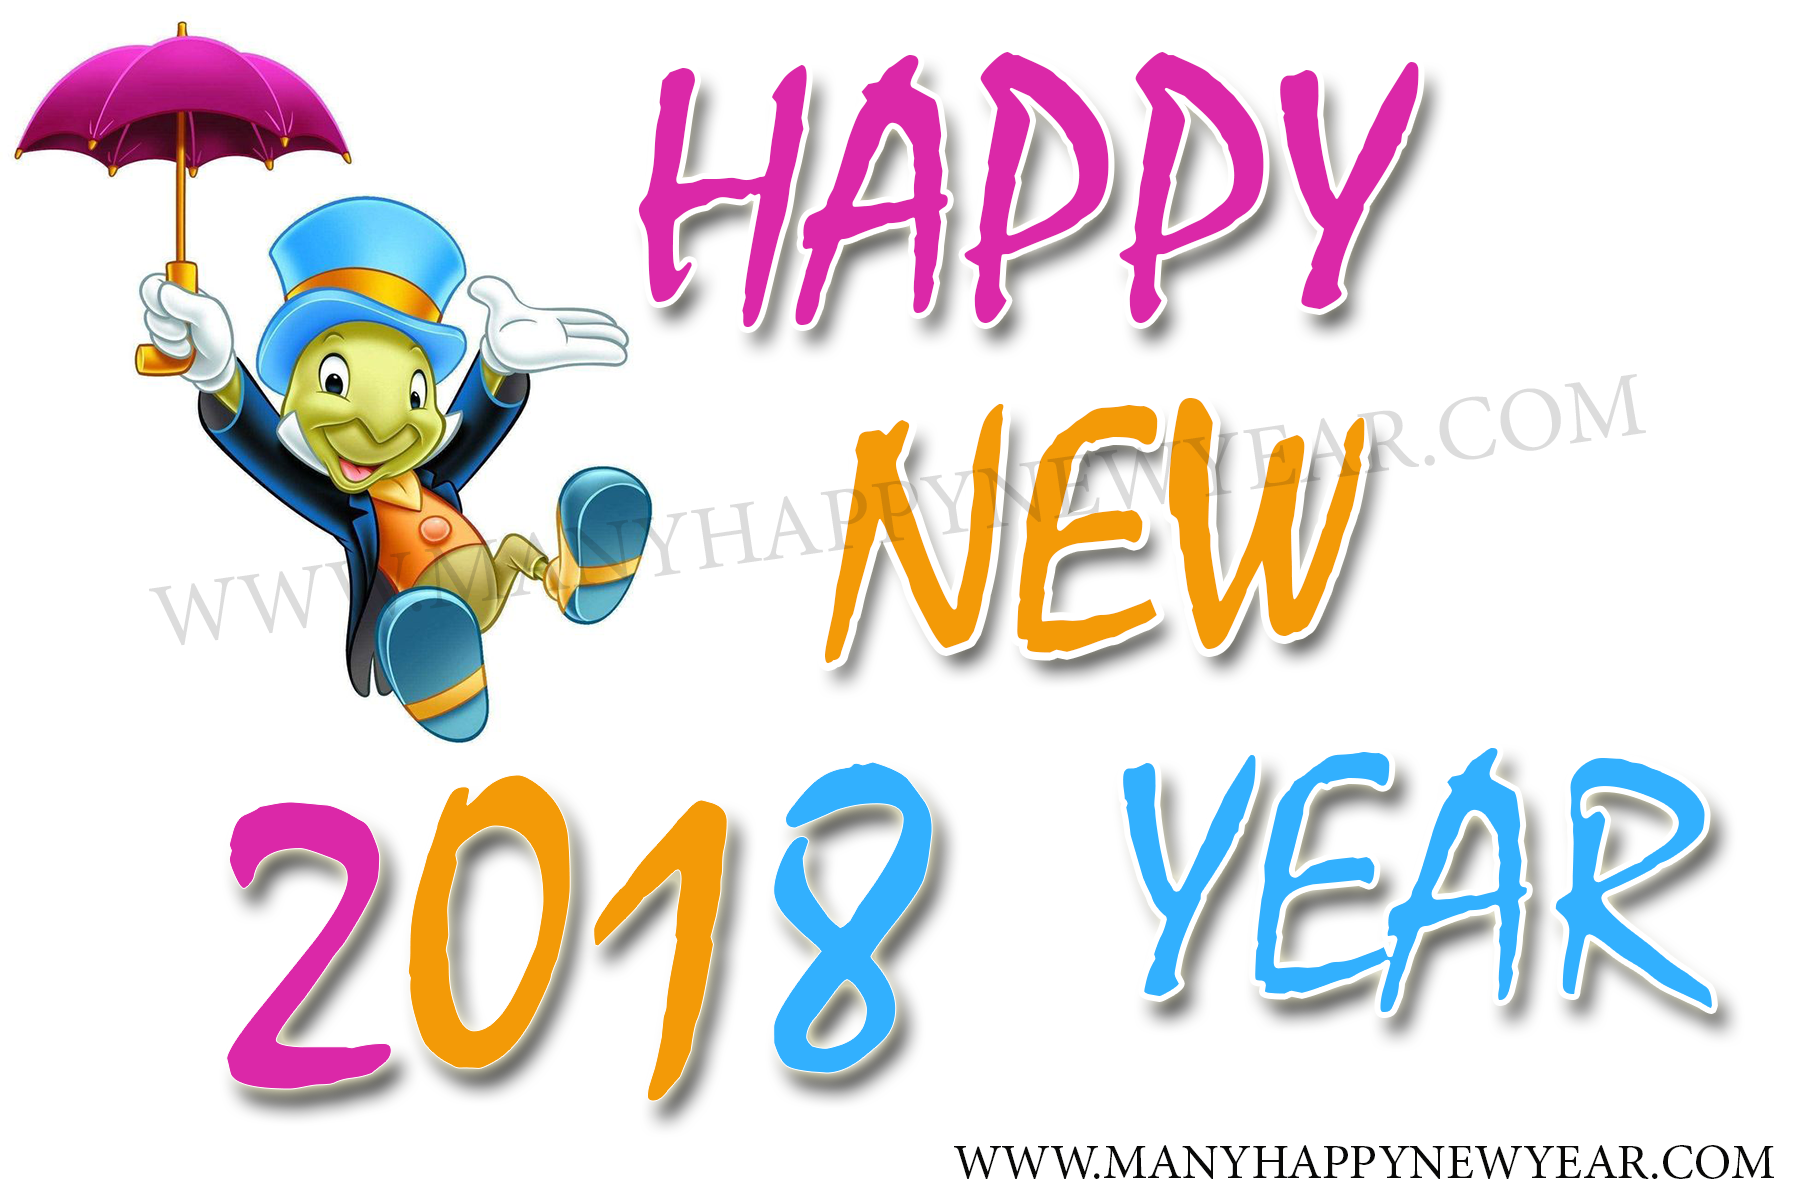 2018 clipart happy new years. Year clip art vector